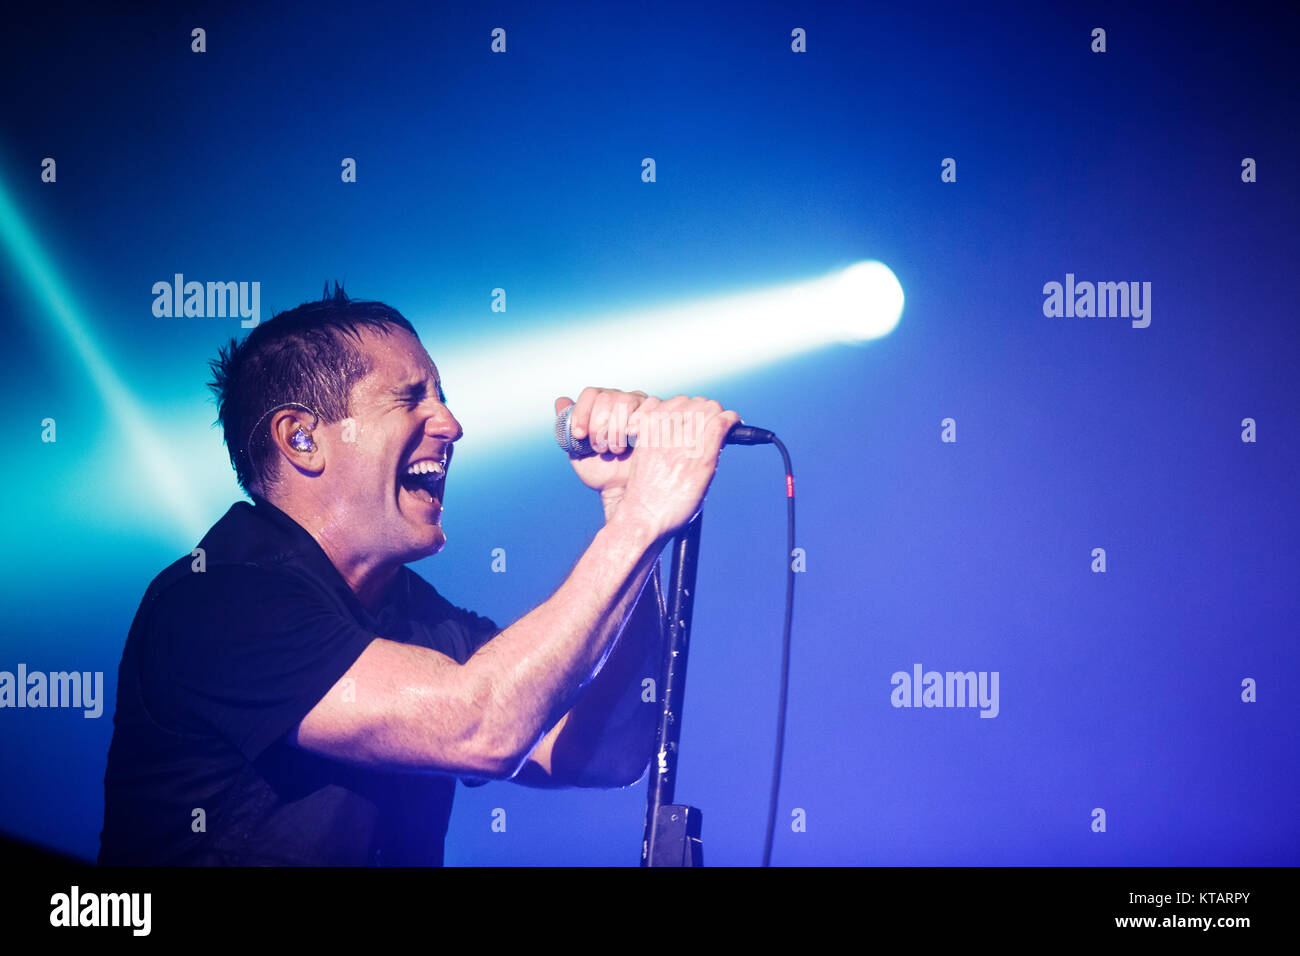 Nine Inch Nails Live Music Stock Photos & Nine Inch Nails Live Music ...